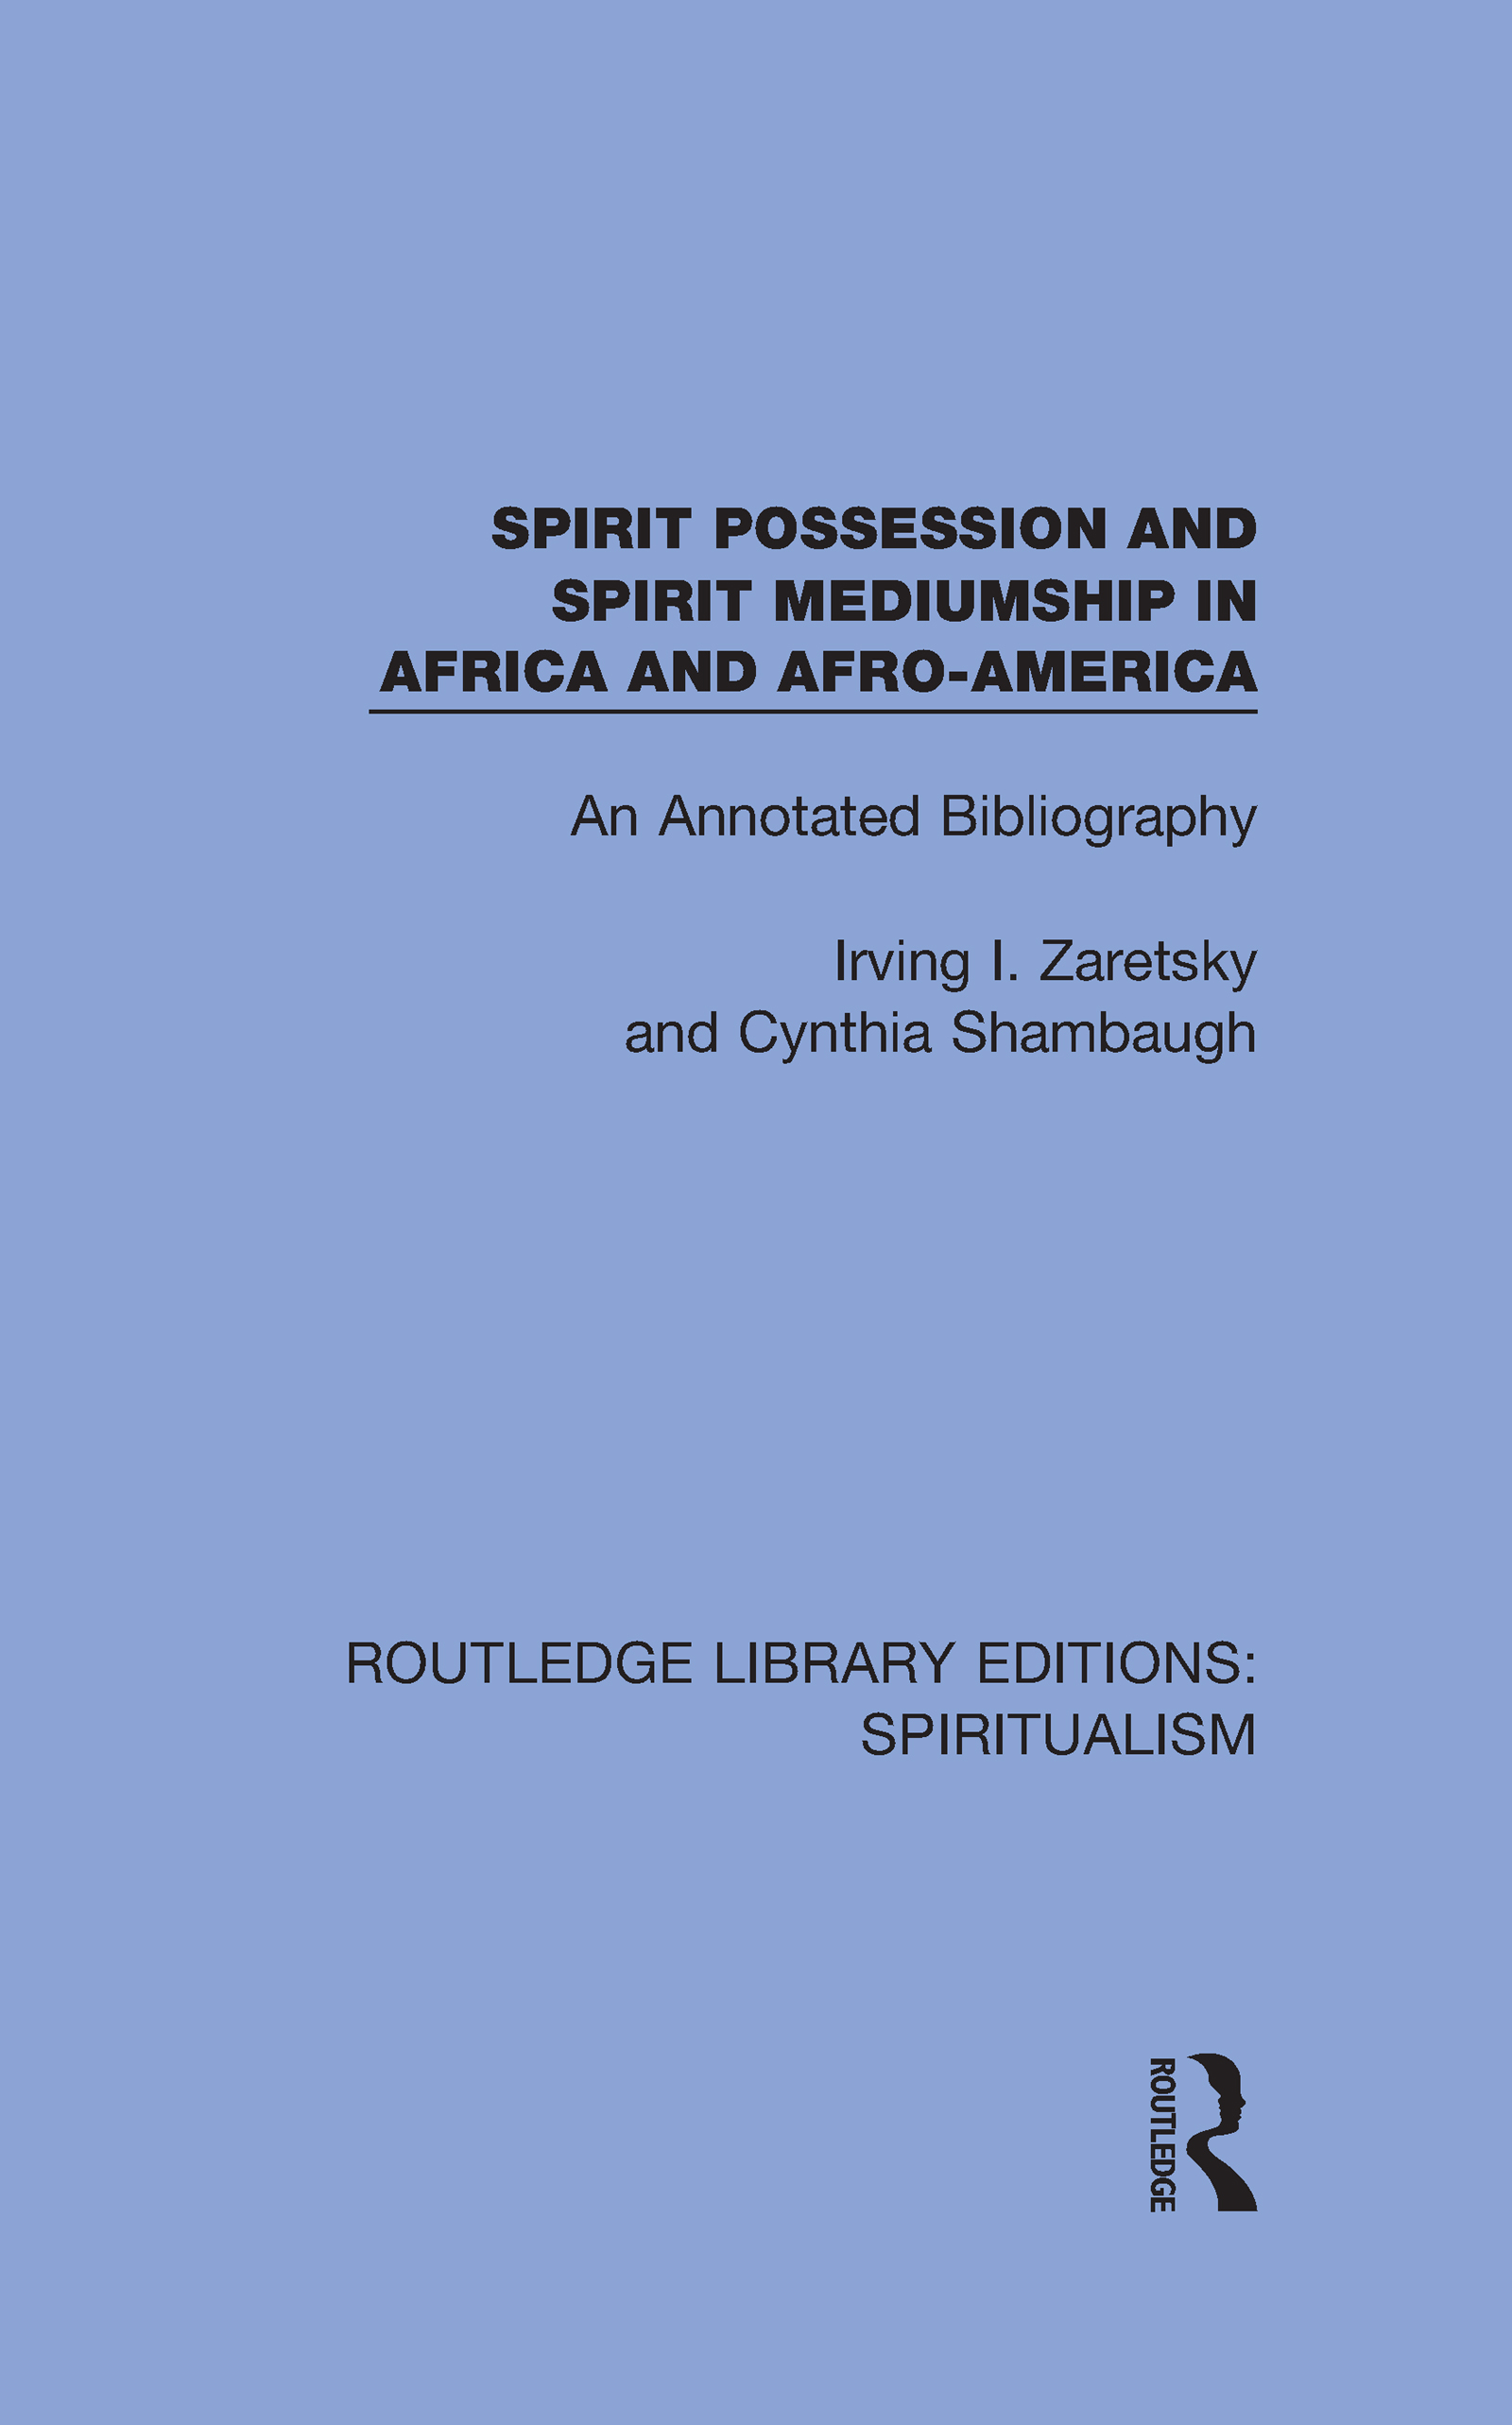 Spirit Possession and Spirit Mediumship in Africa and Afro-America